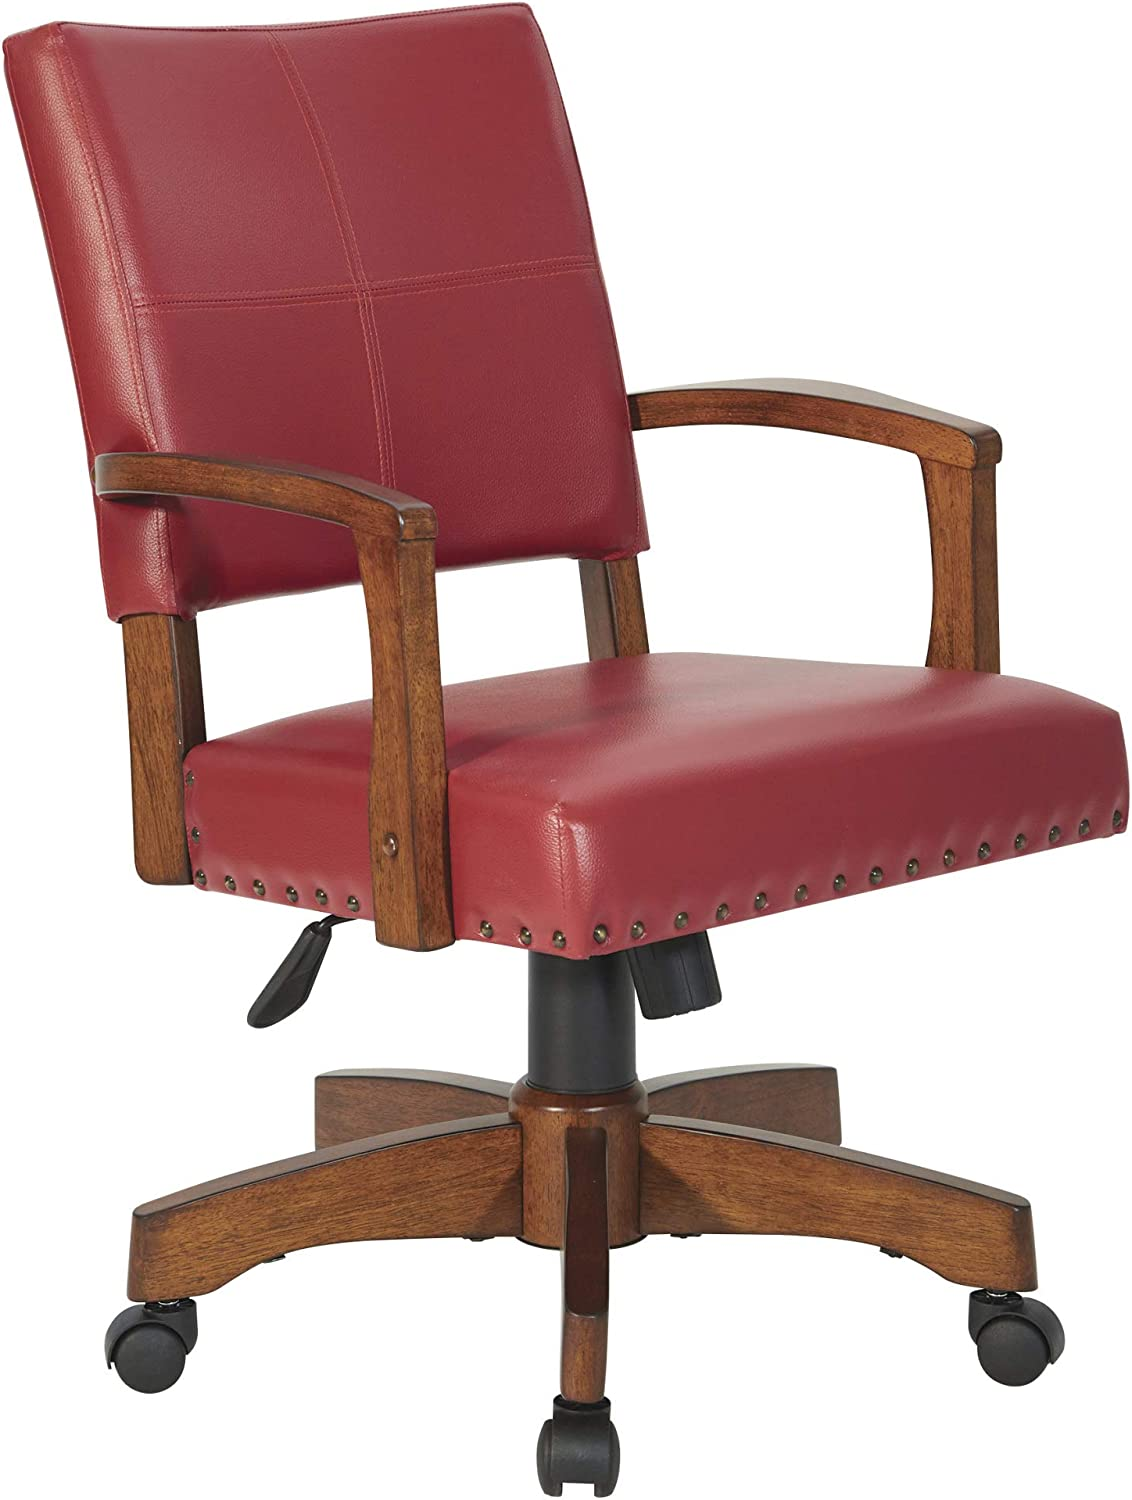 OSP Home Furnishings Deluxe Wood Bankers Desk Chair with Faux Leather and Antique Bronze Nailheads, Red